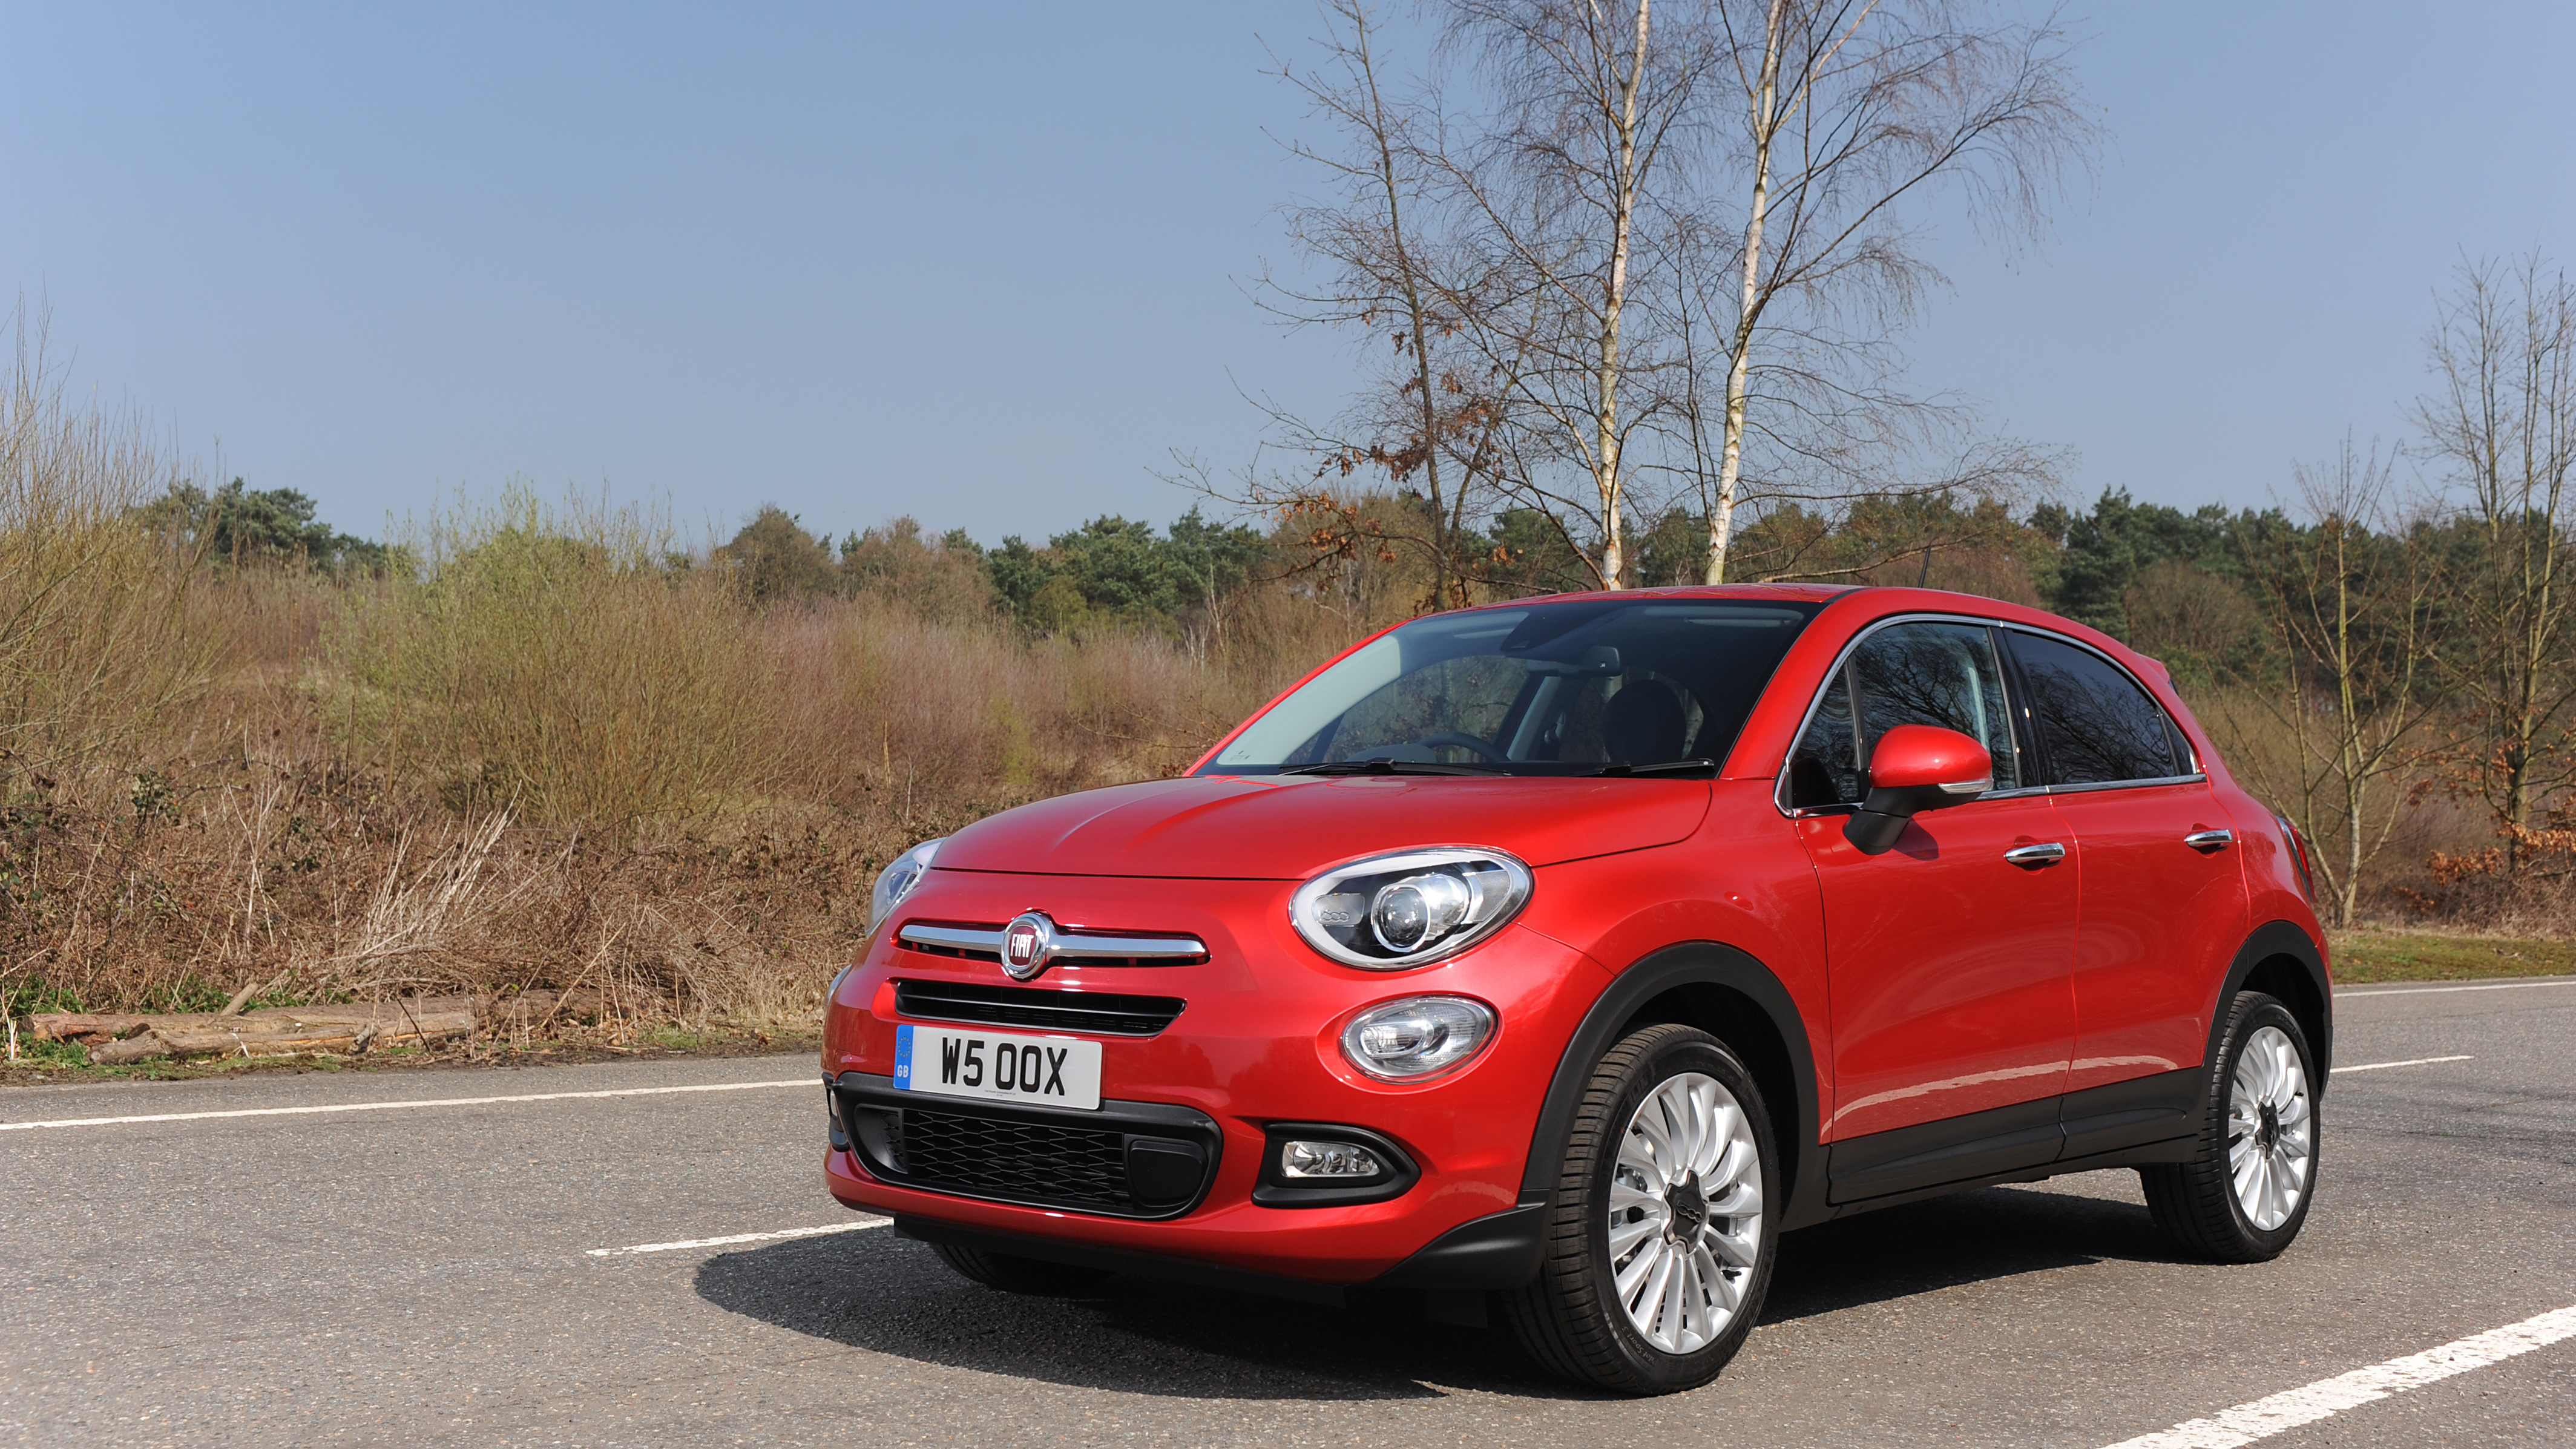 fiat 500x review and buying guide best deals and prices buyacar. Black Bedroom Furniture Sets. Home Design Ideas